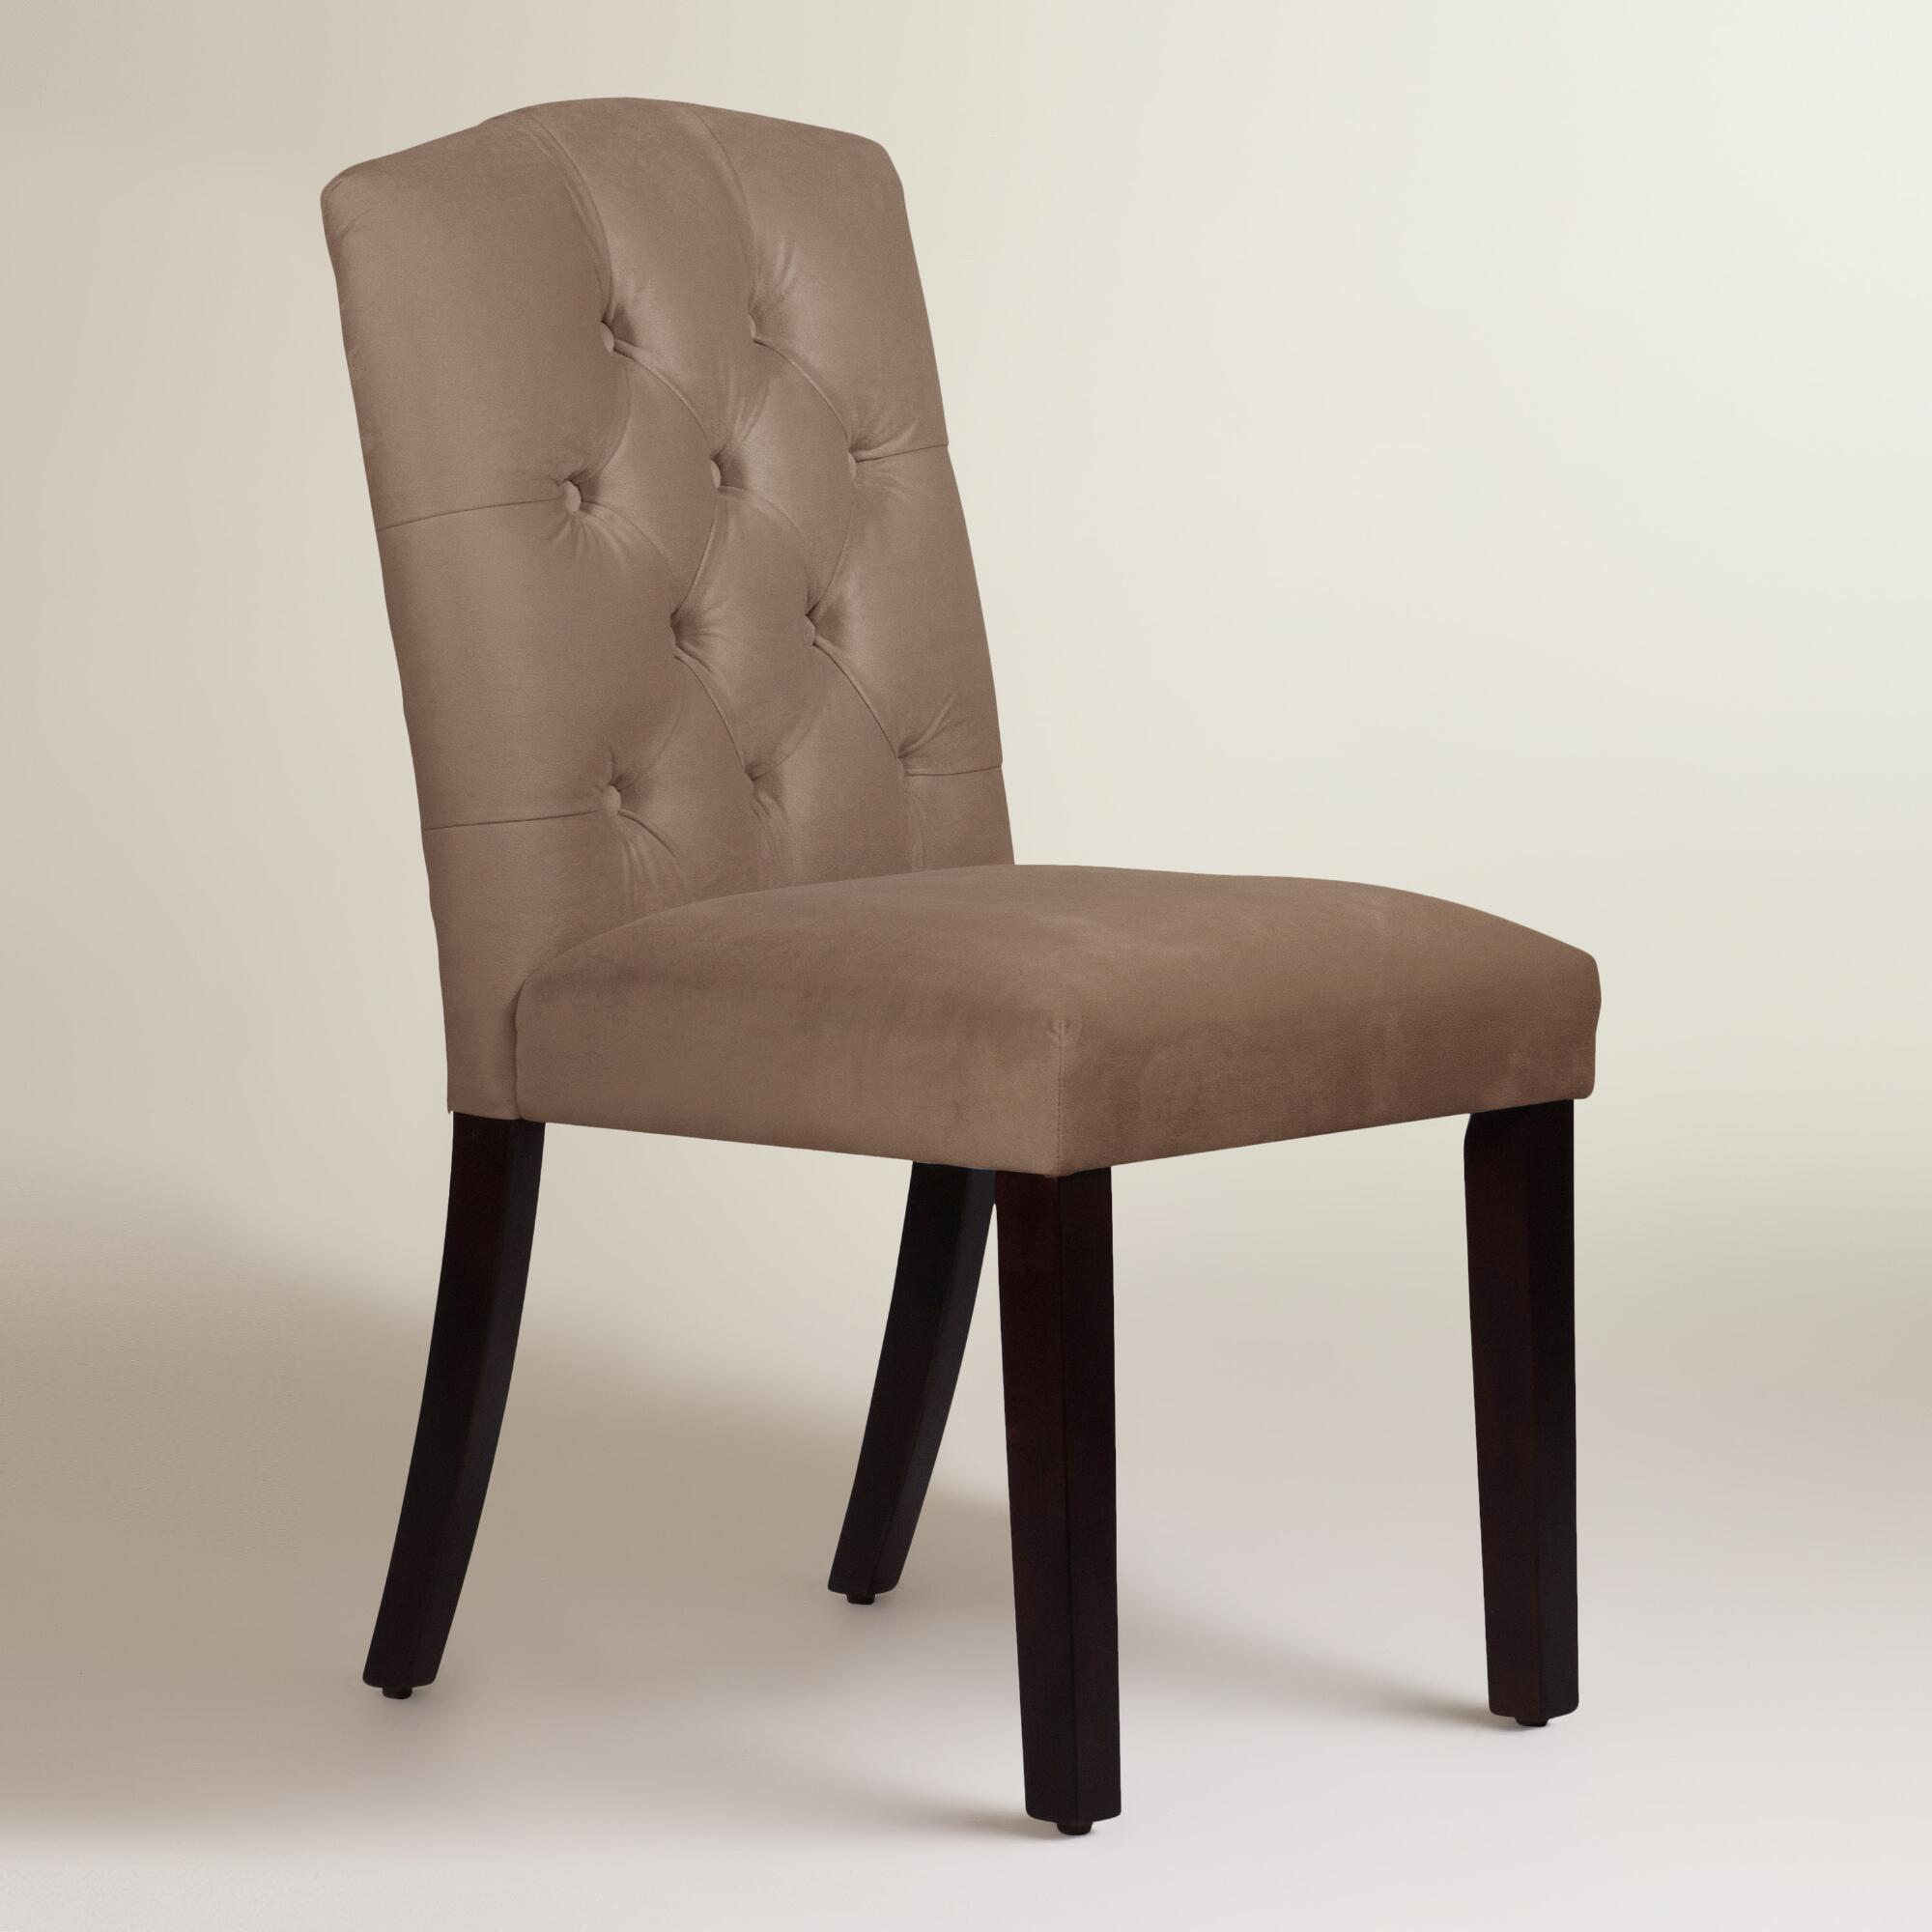 Velvet tufted zoey dining chair world market for Dining room velvet chairs